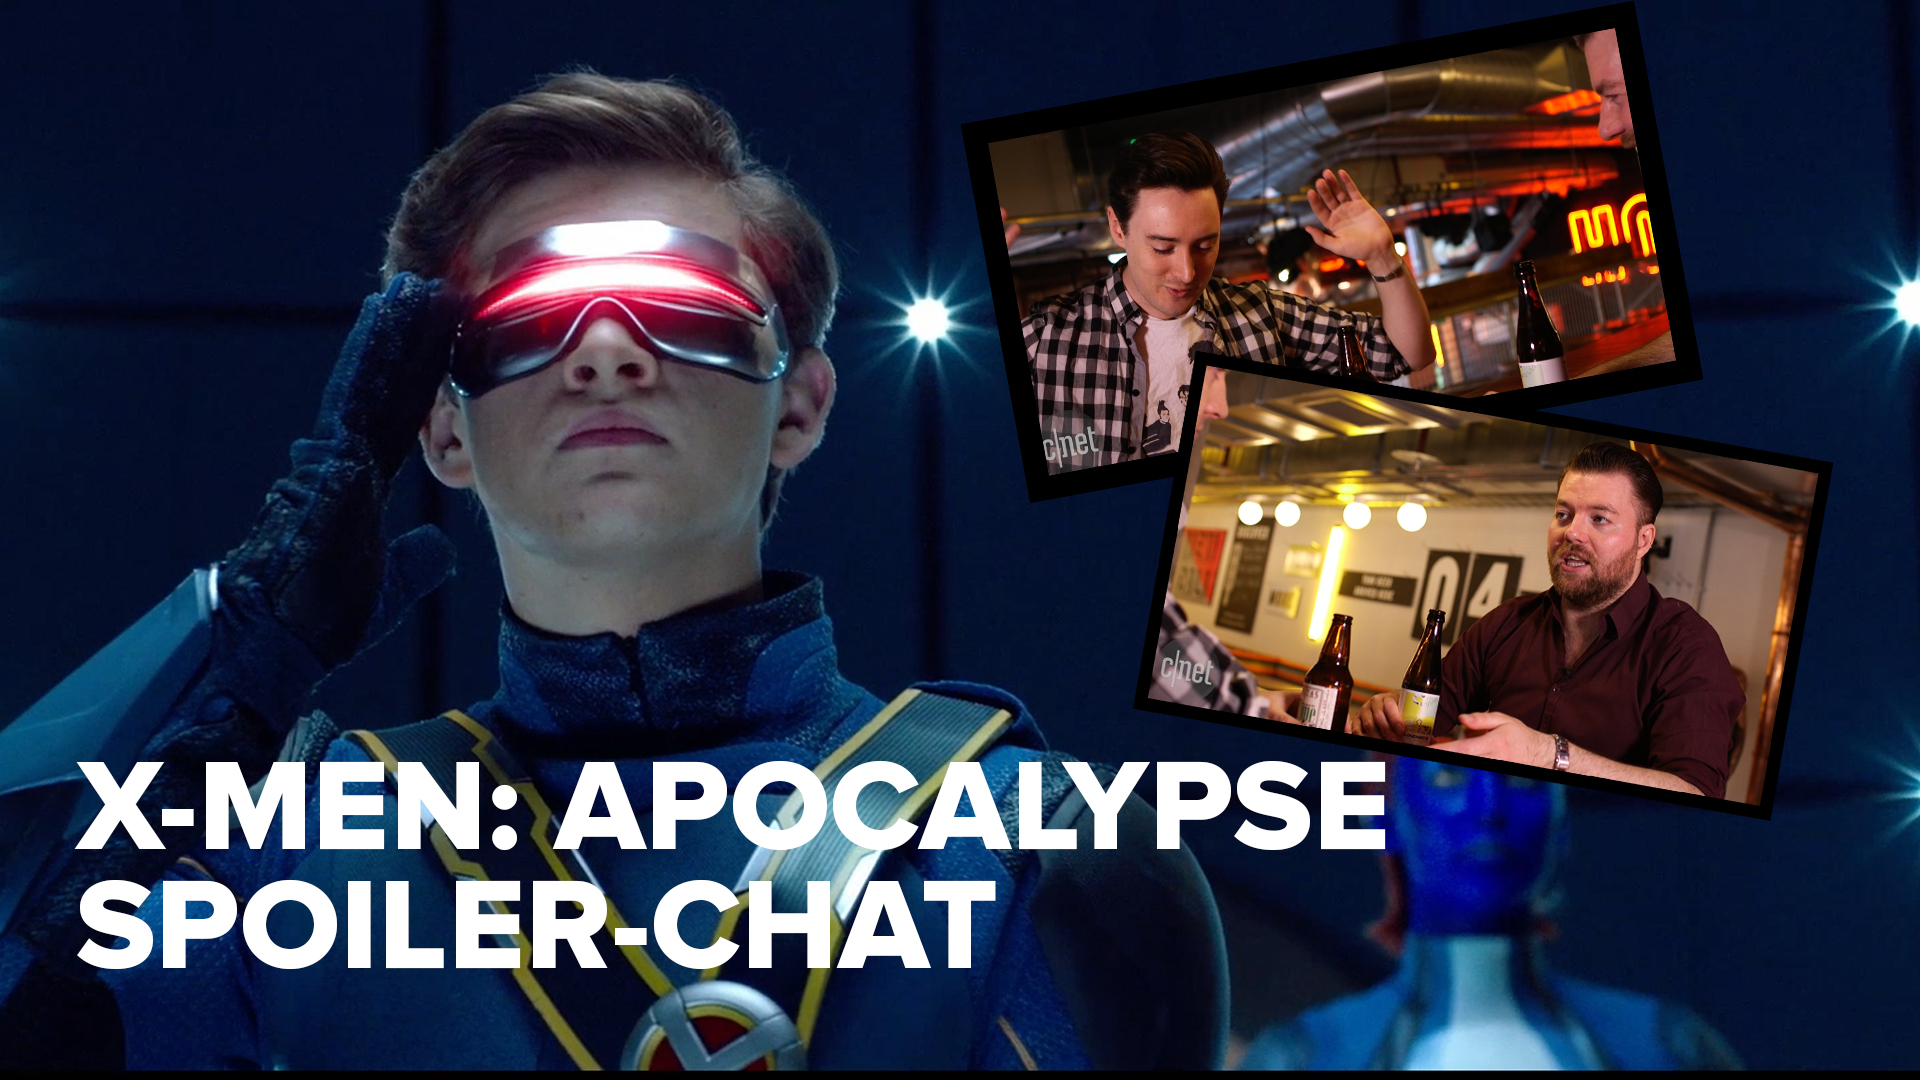 Video: X-Men: Apocalypse: Down the pub spoiler-chat